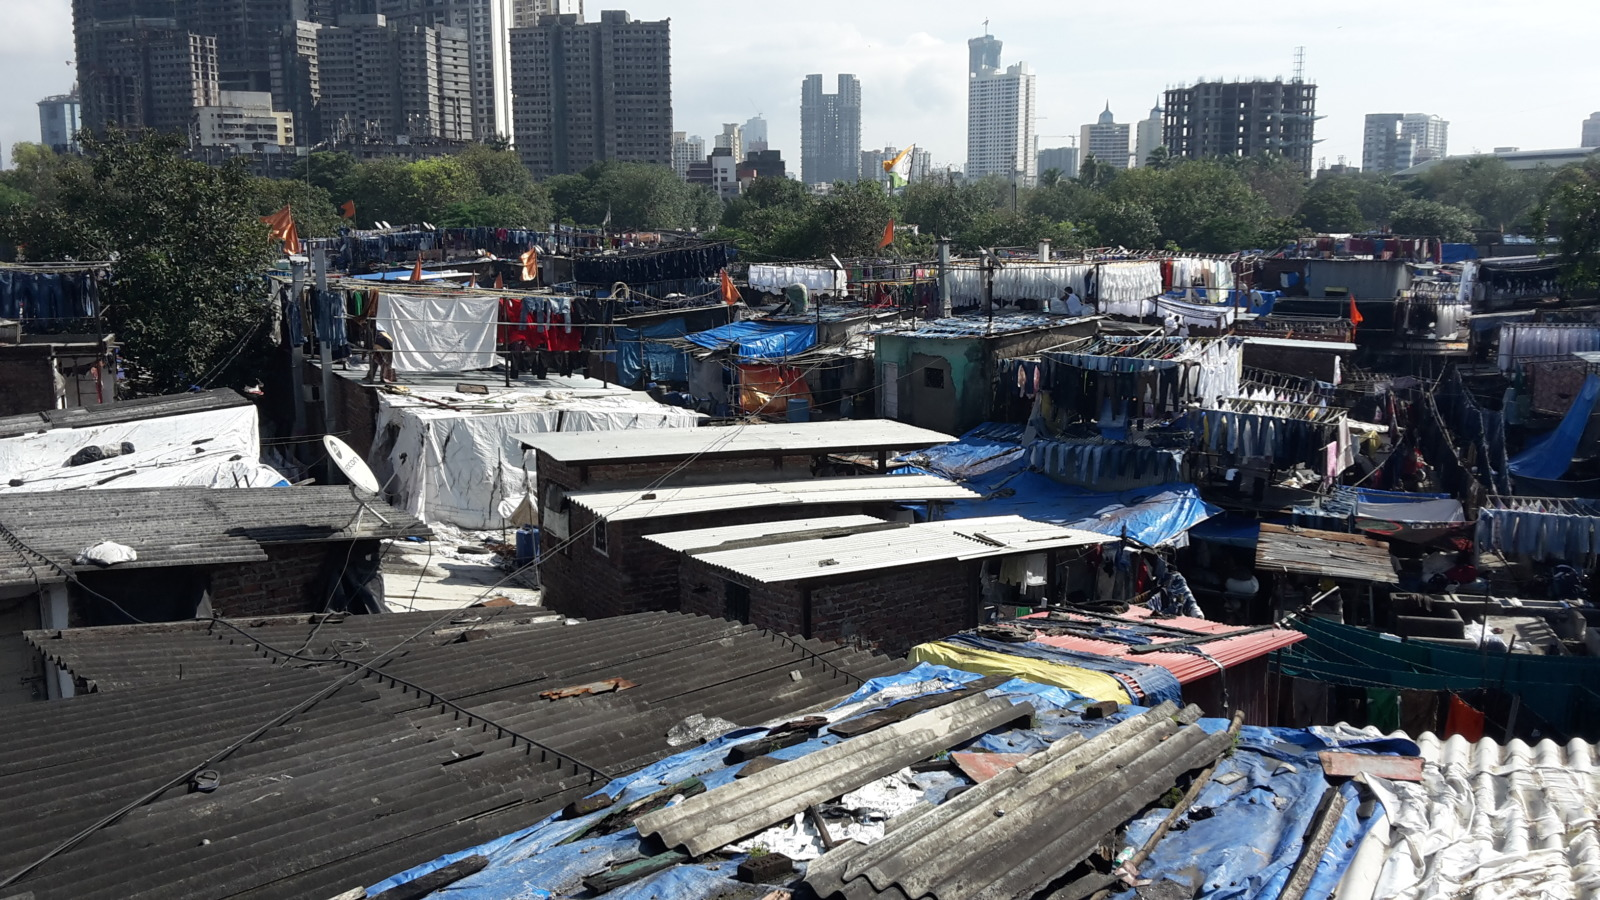 The Dhobi Ghat in Mumbai.